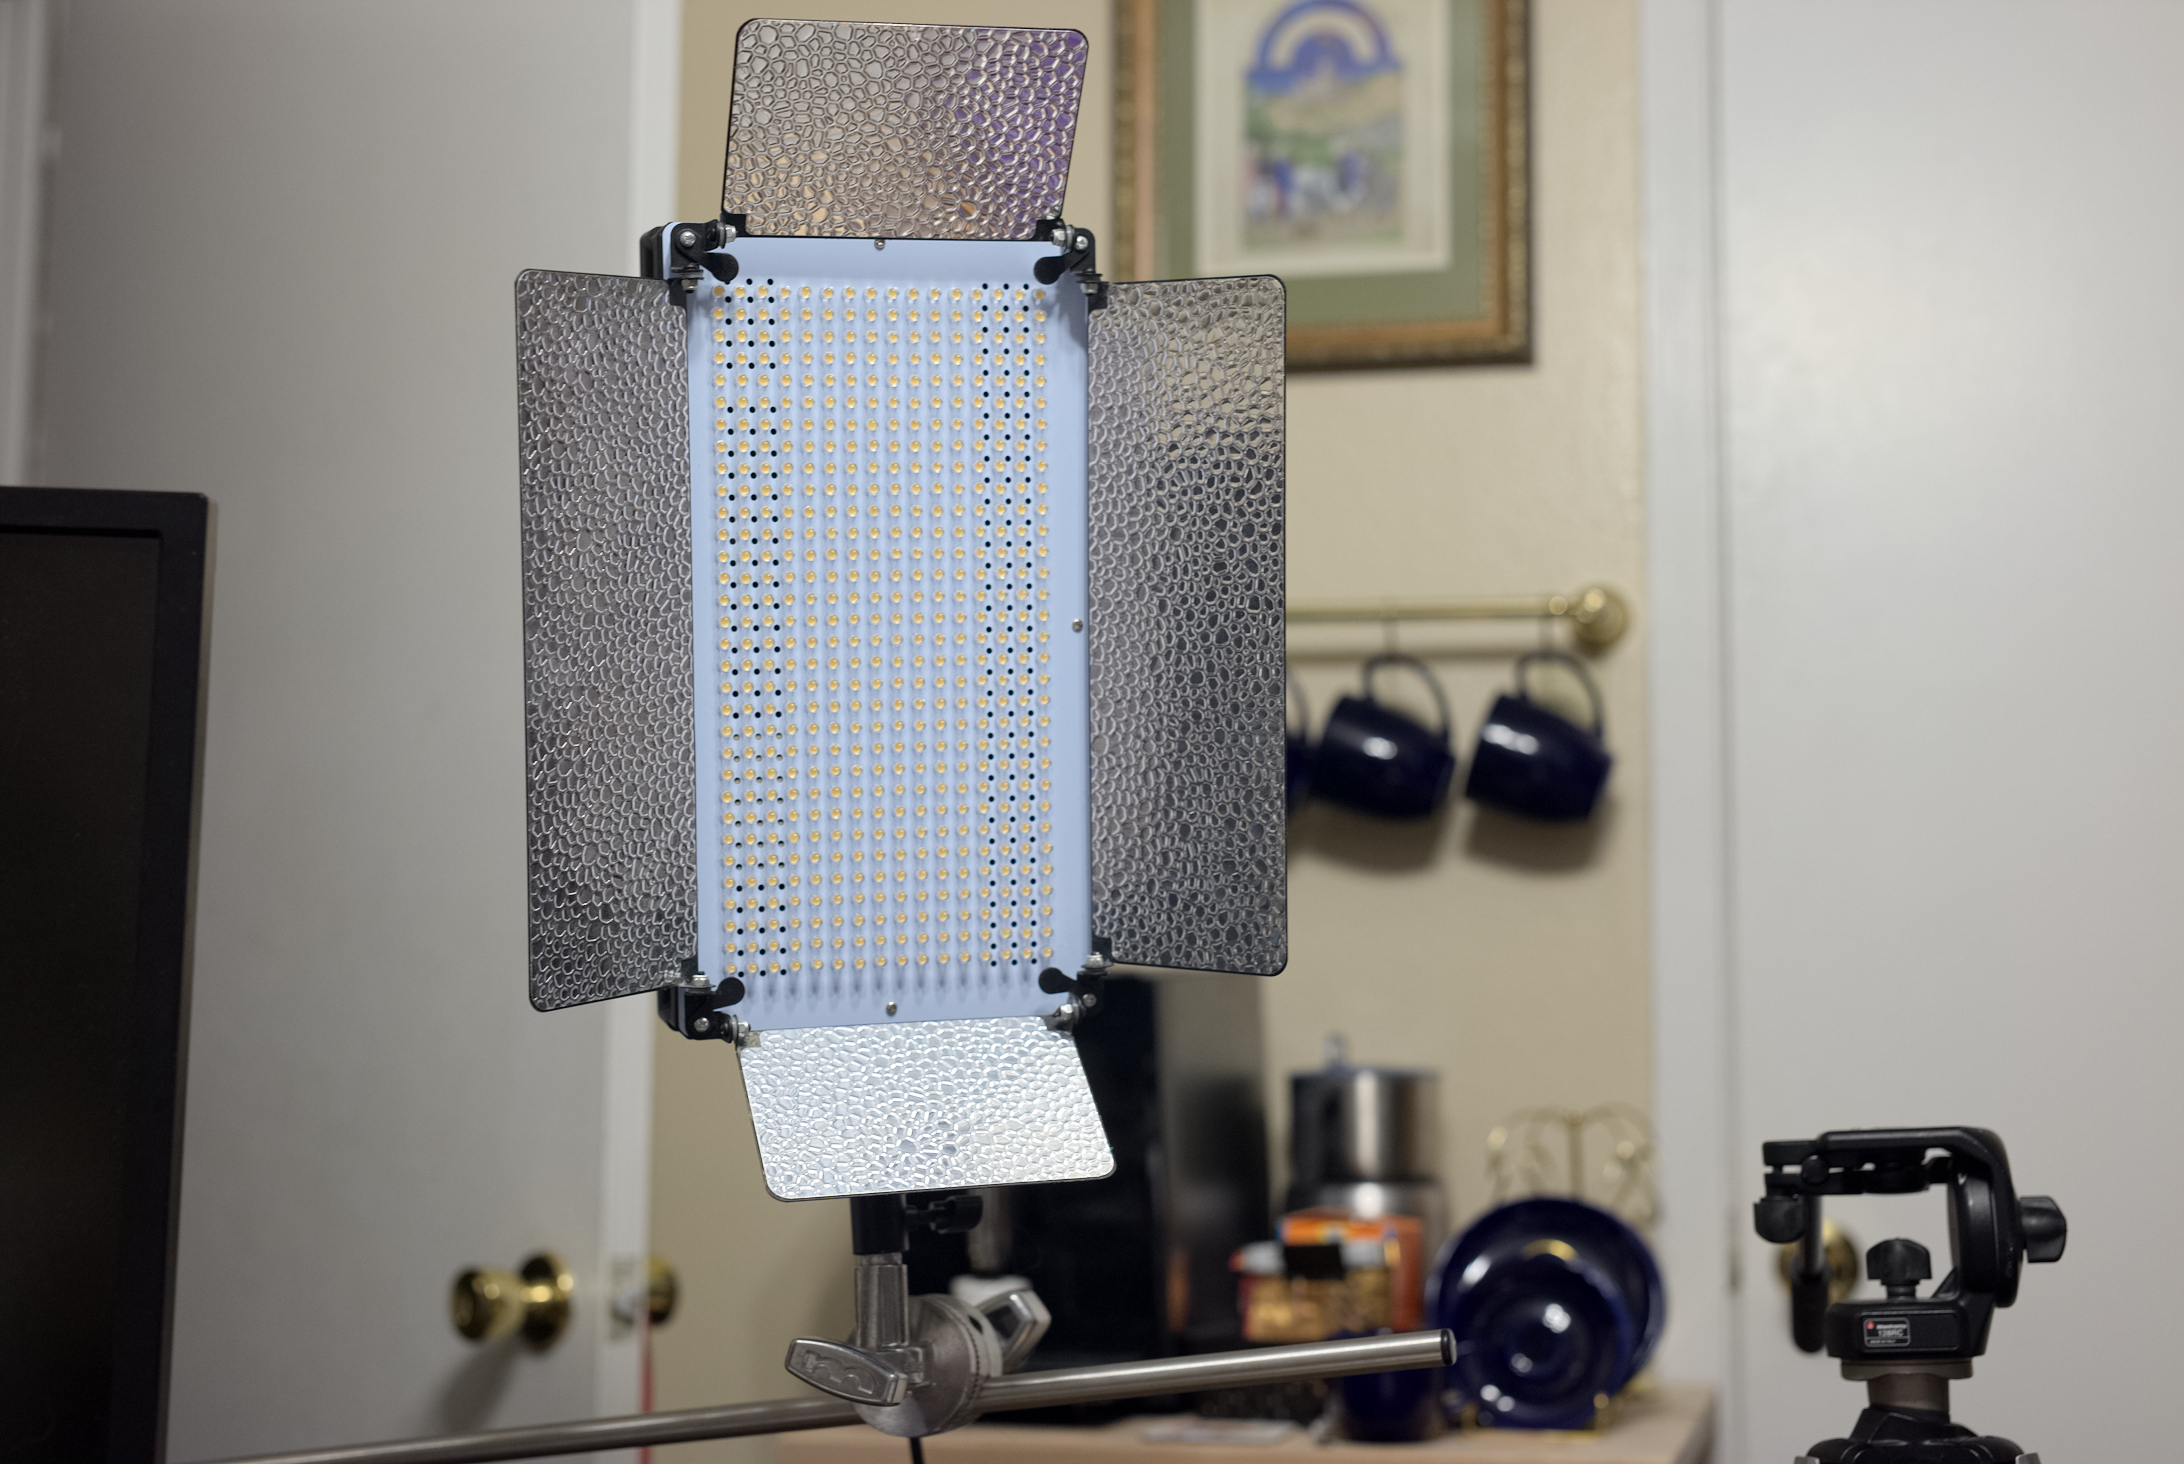 A picture of a studio light